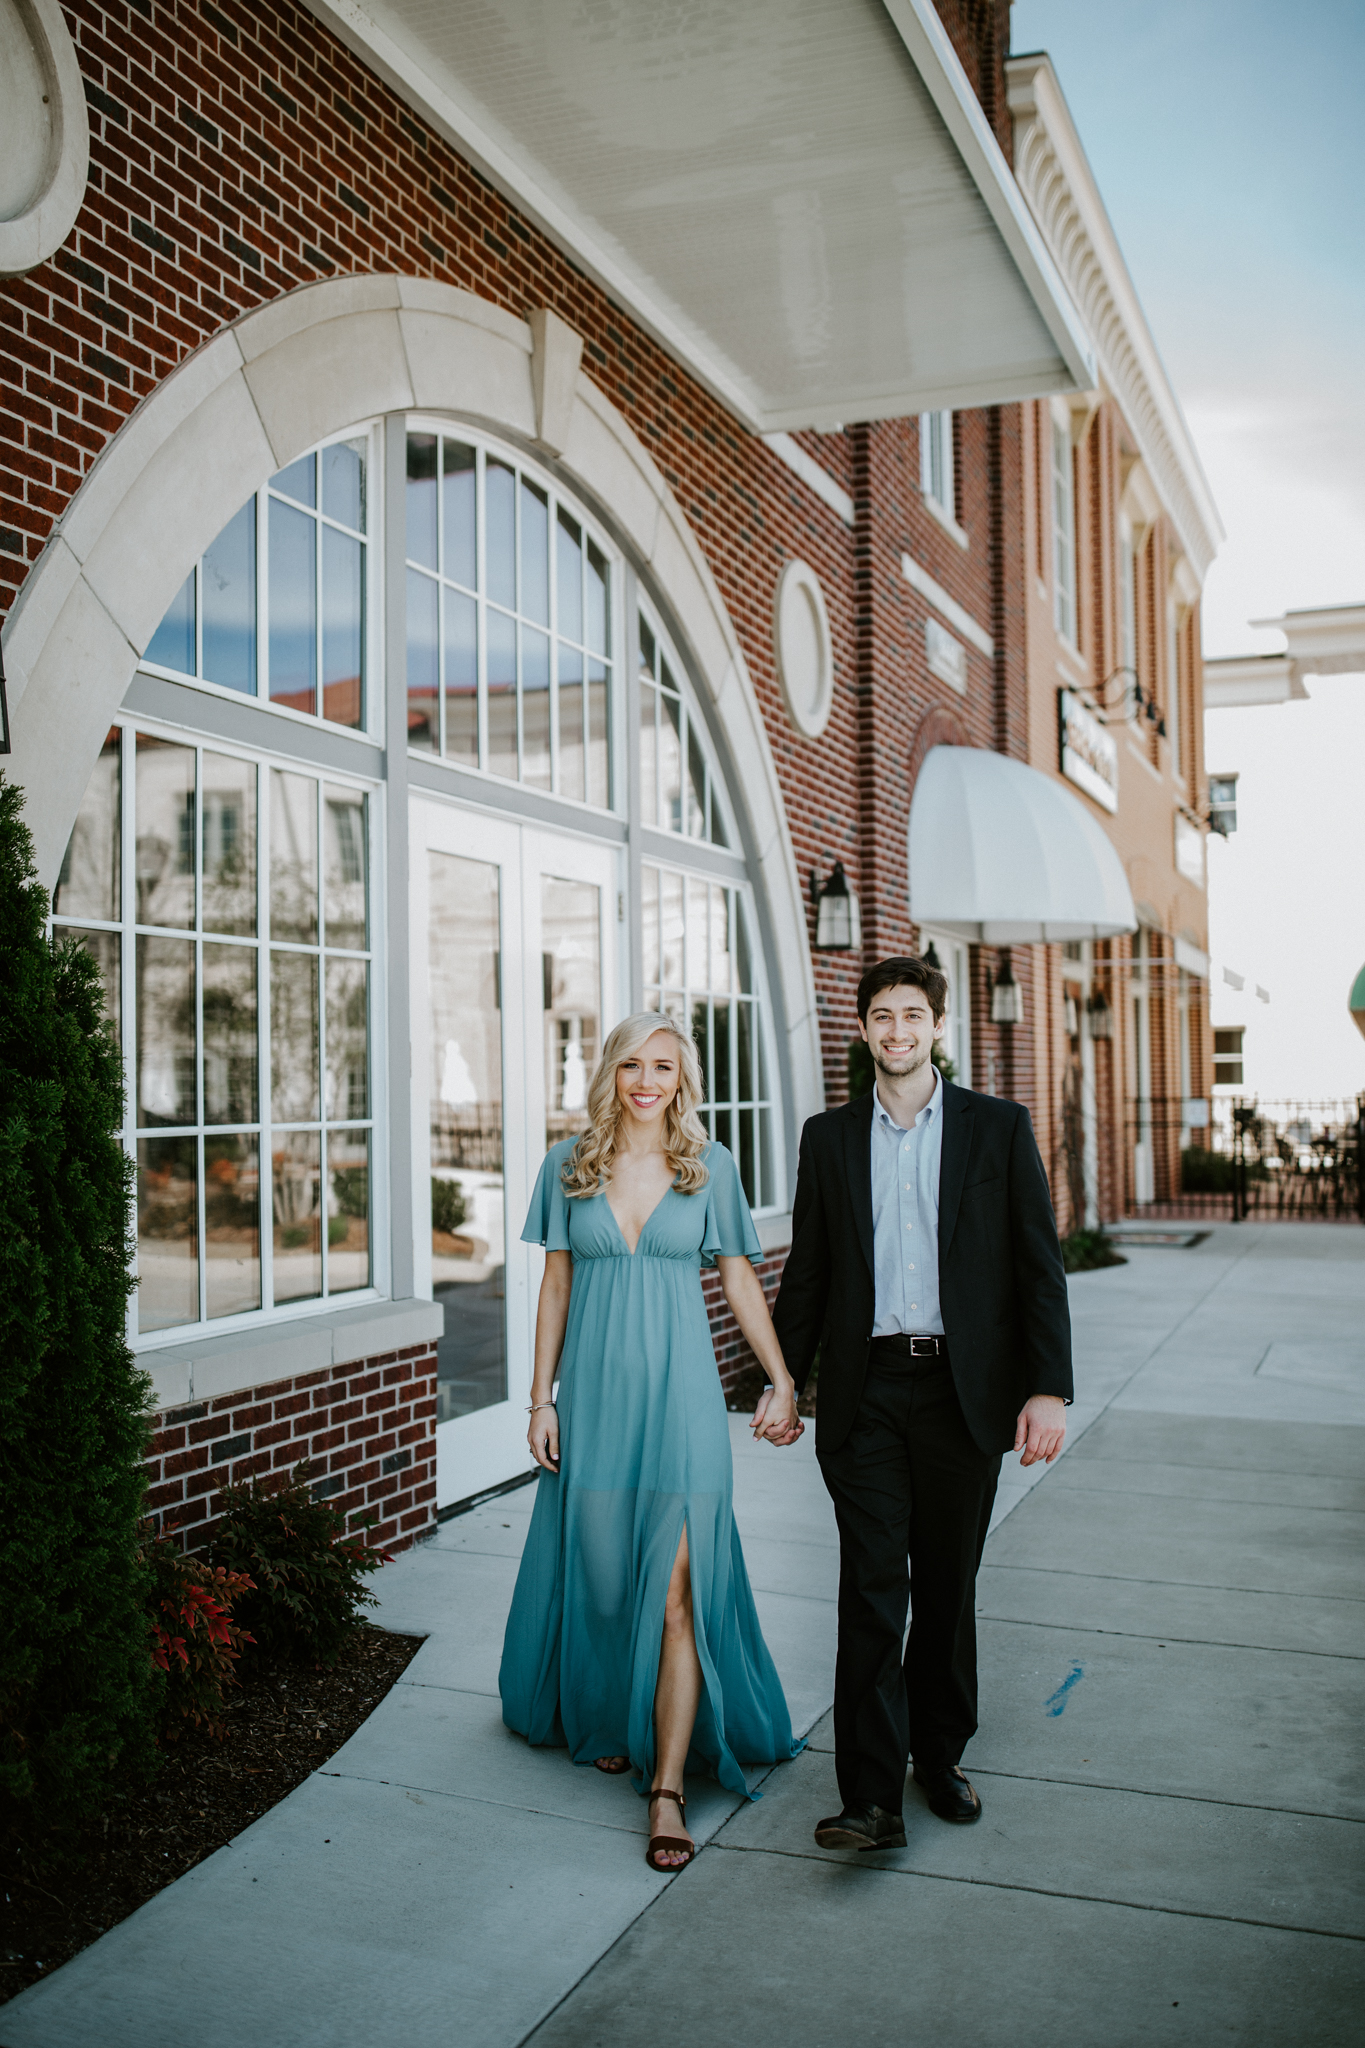 Ali-and-Jake-Chattanooga-Nashville-Tennessee-Wedding-Elopement-Photographer-56.jpg